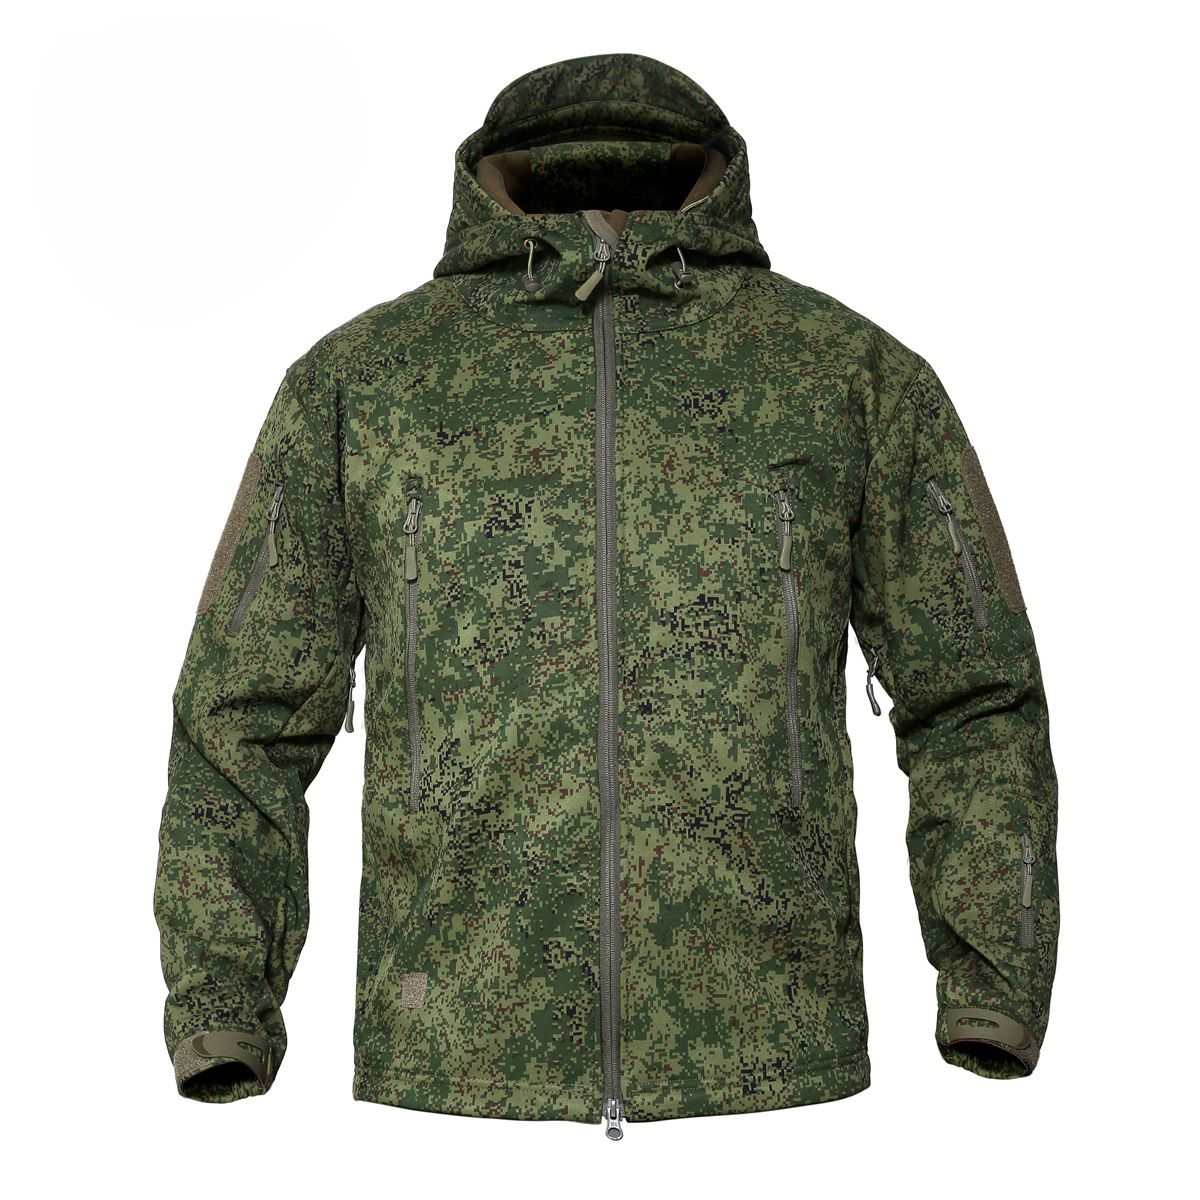 Russian Woodland Digital Camouflage Men's Jackets Outdoor Waterproof Softshell Hooded Tactical Jacket(China)